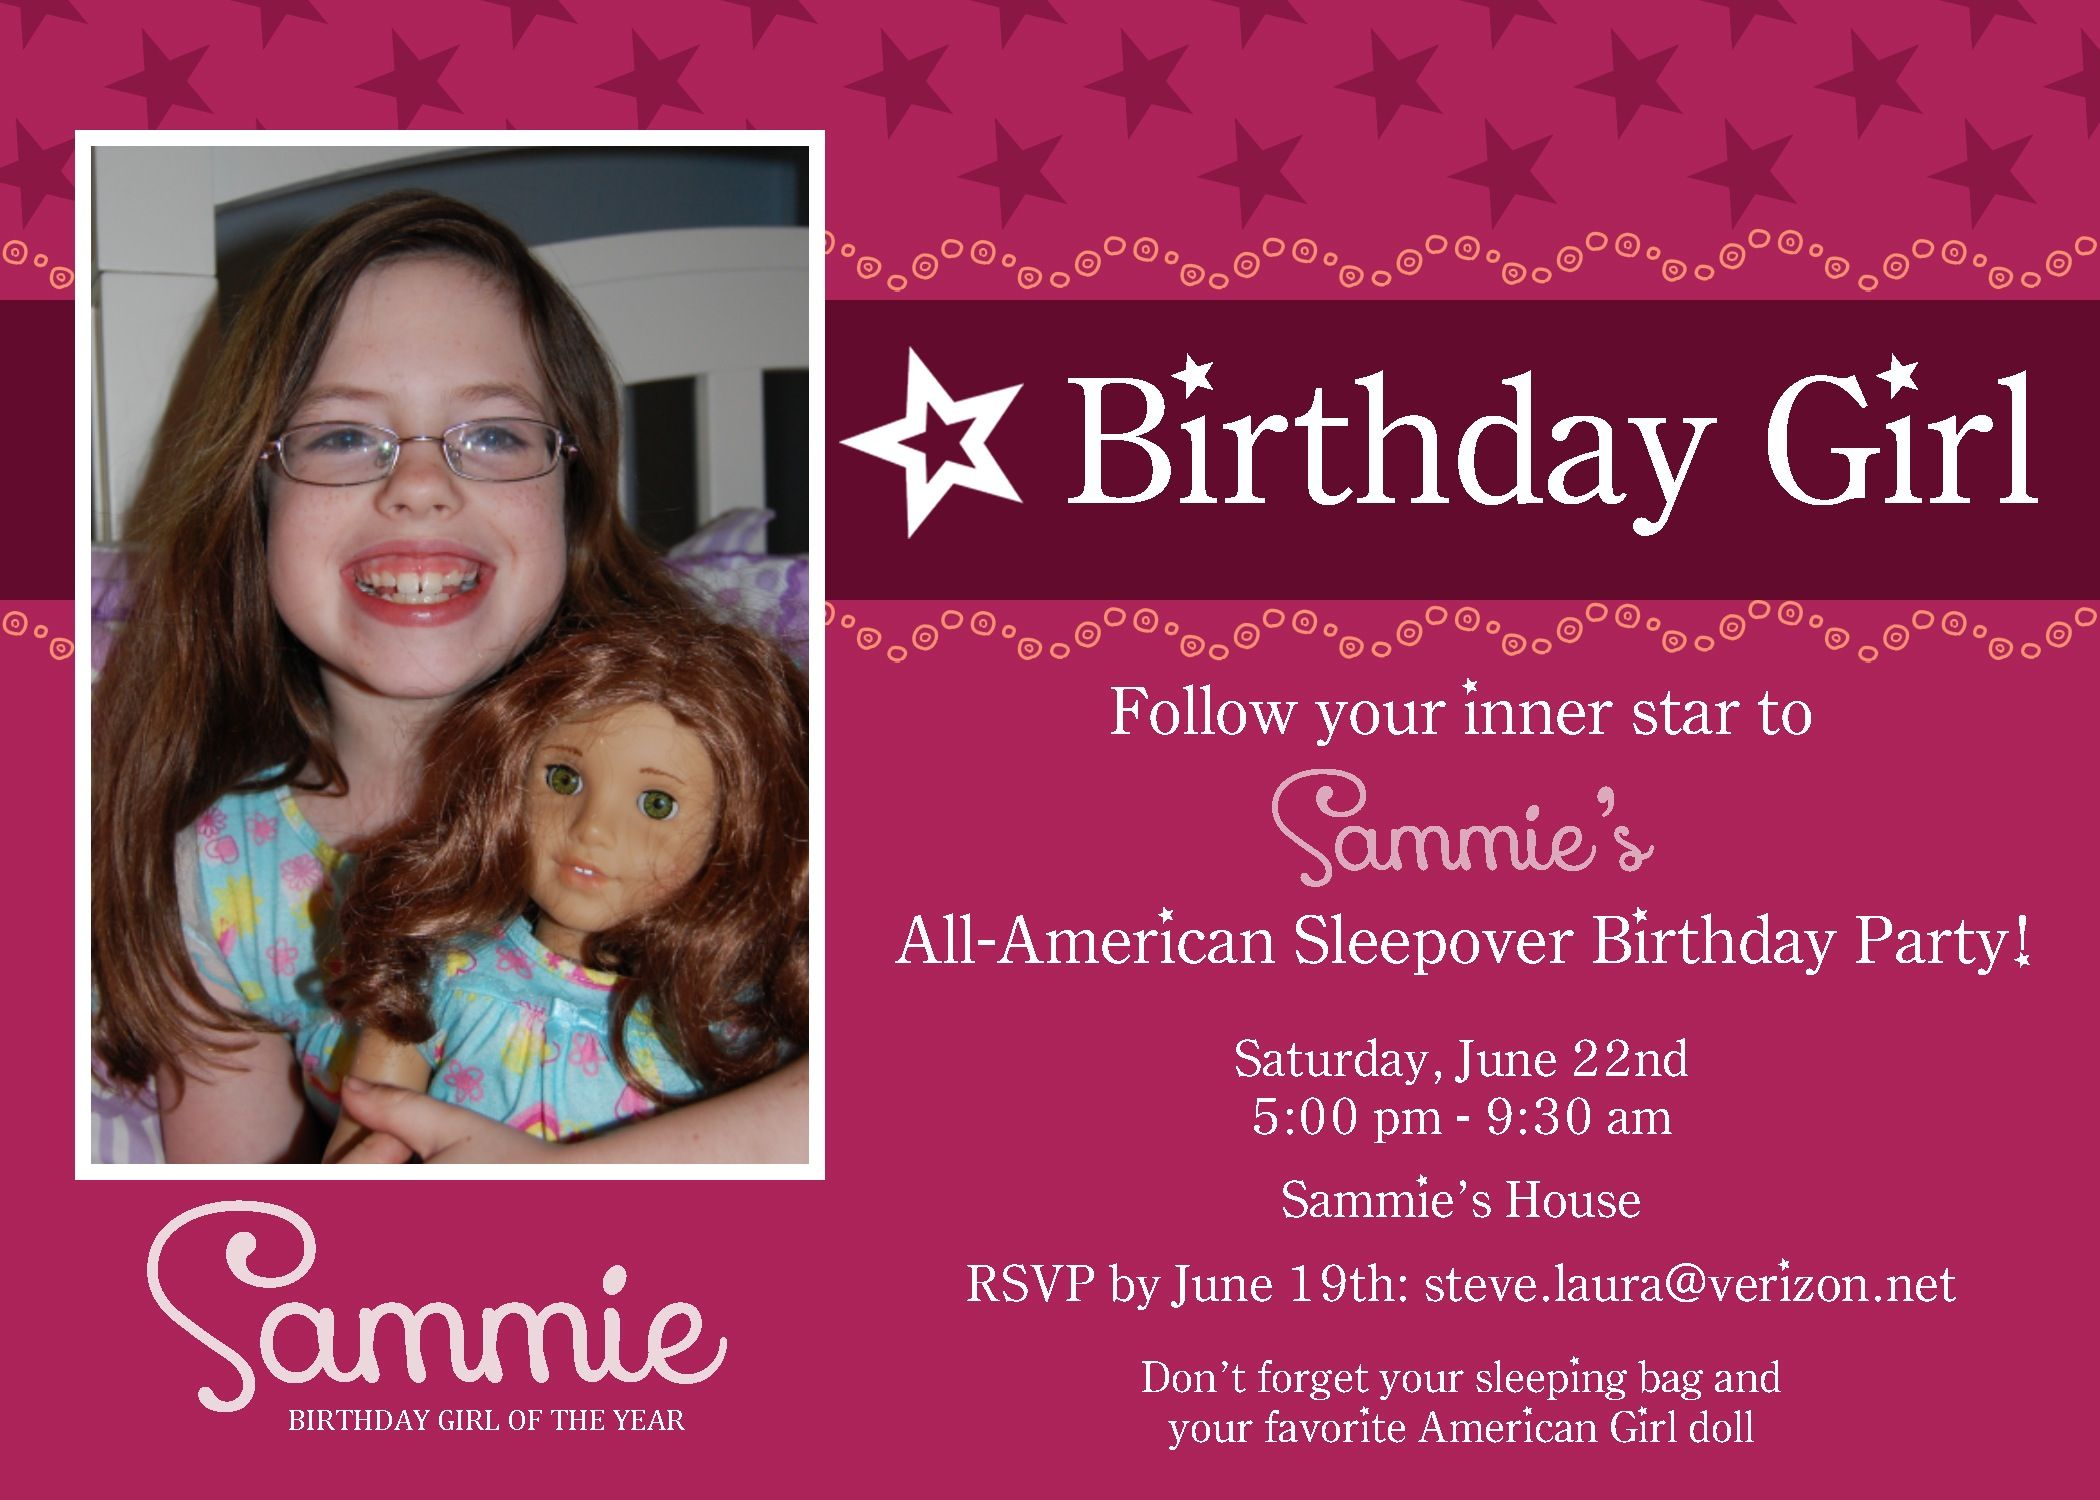 American Girl Party Invitation Cute To Copy Cat In Red In Some